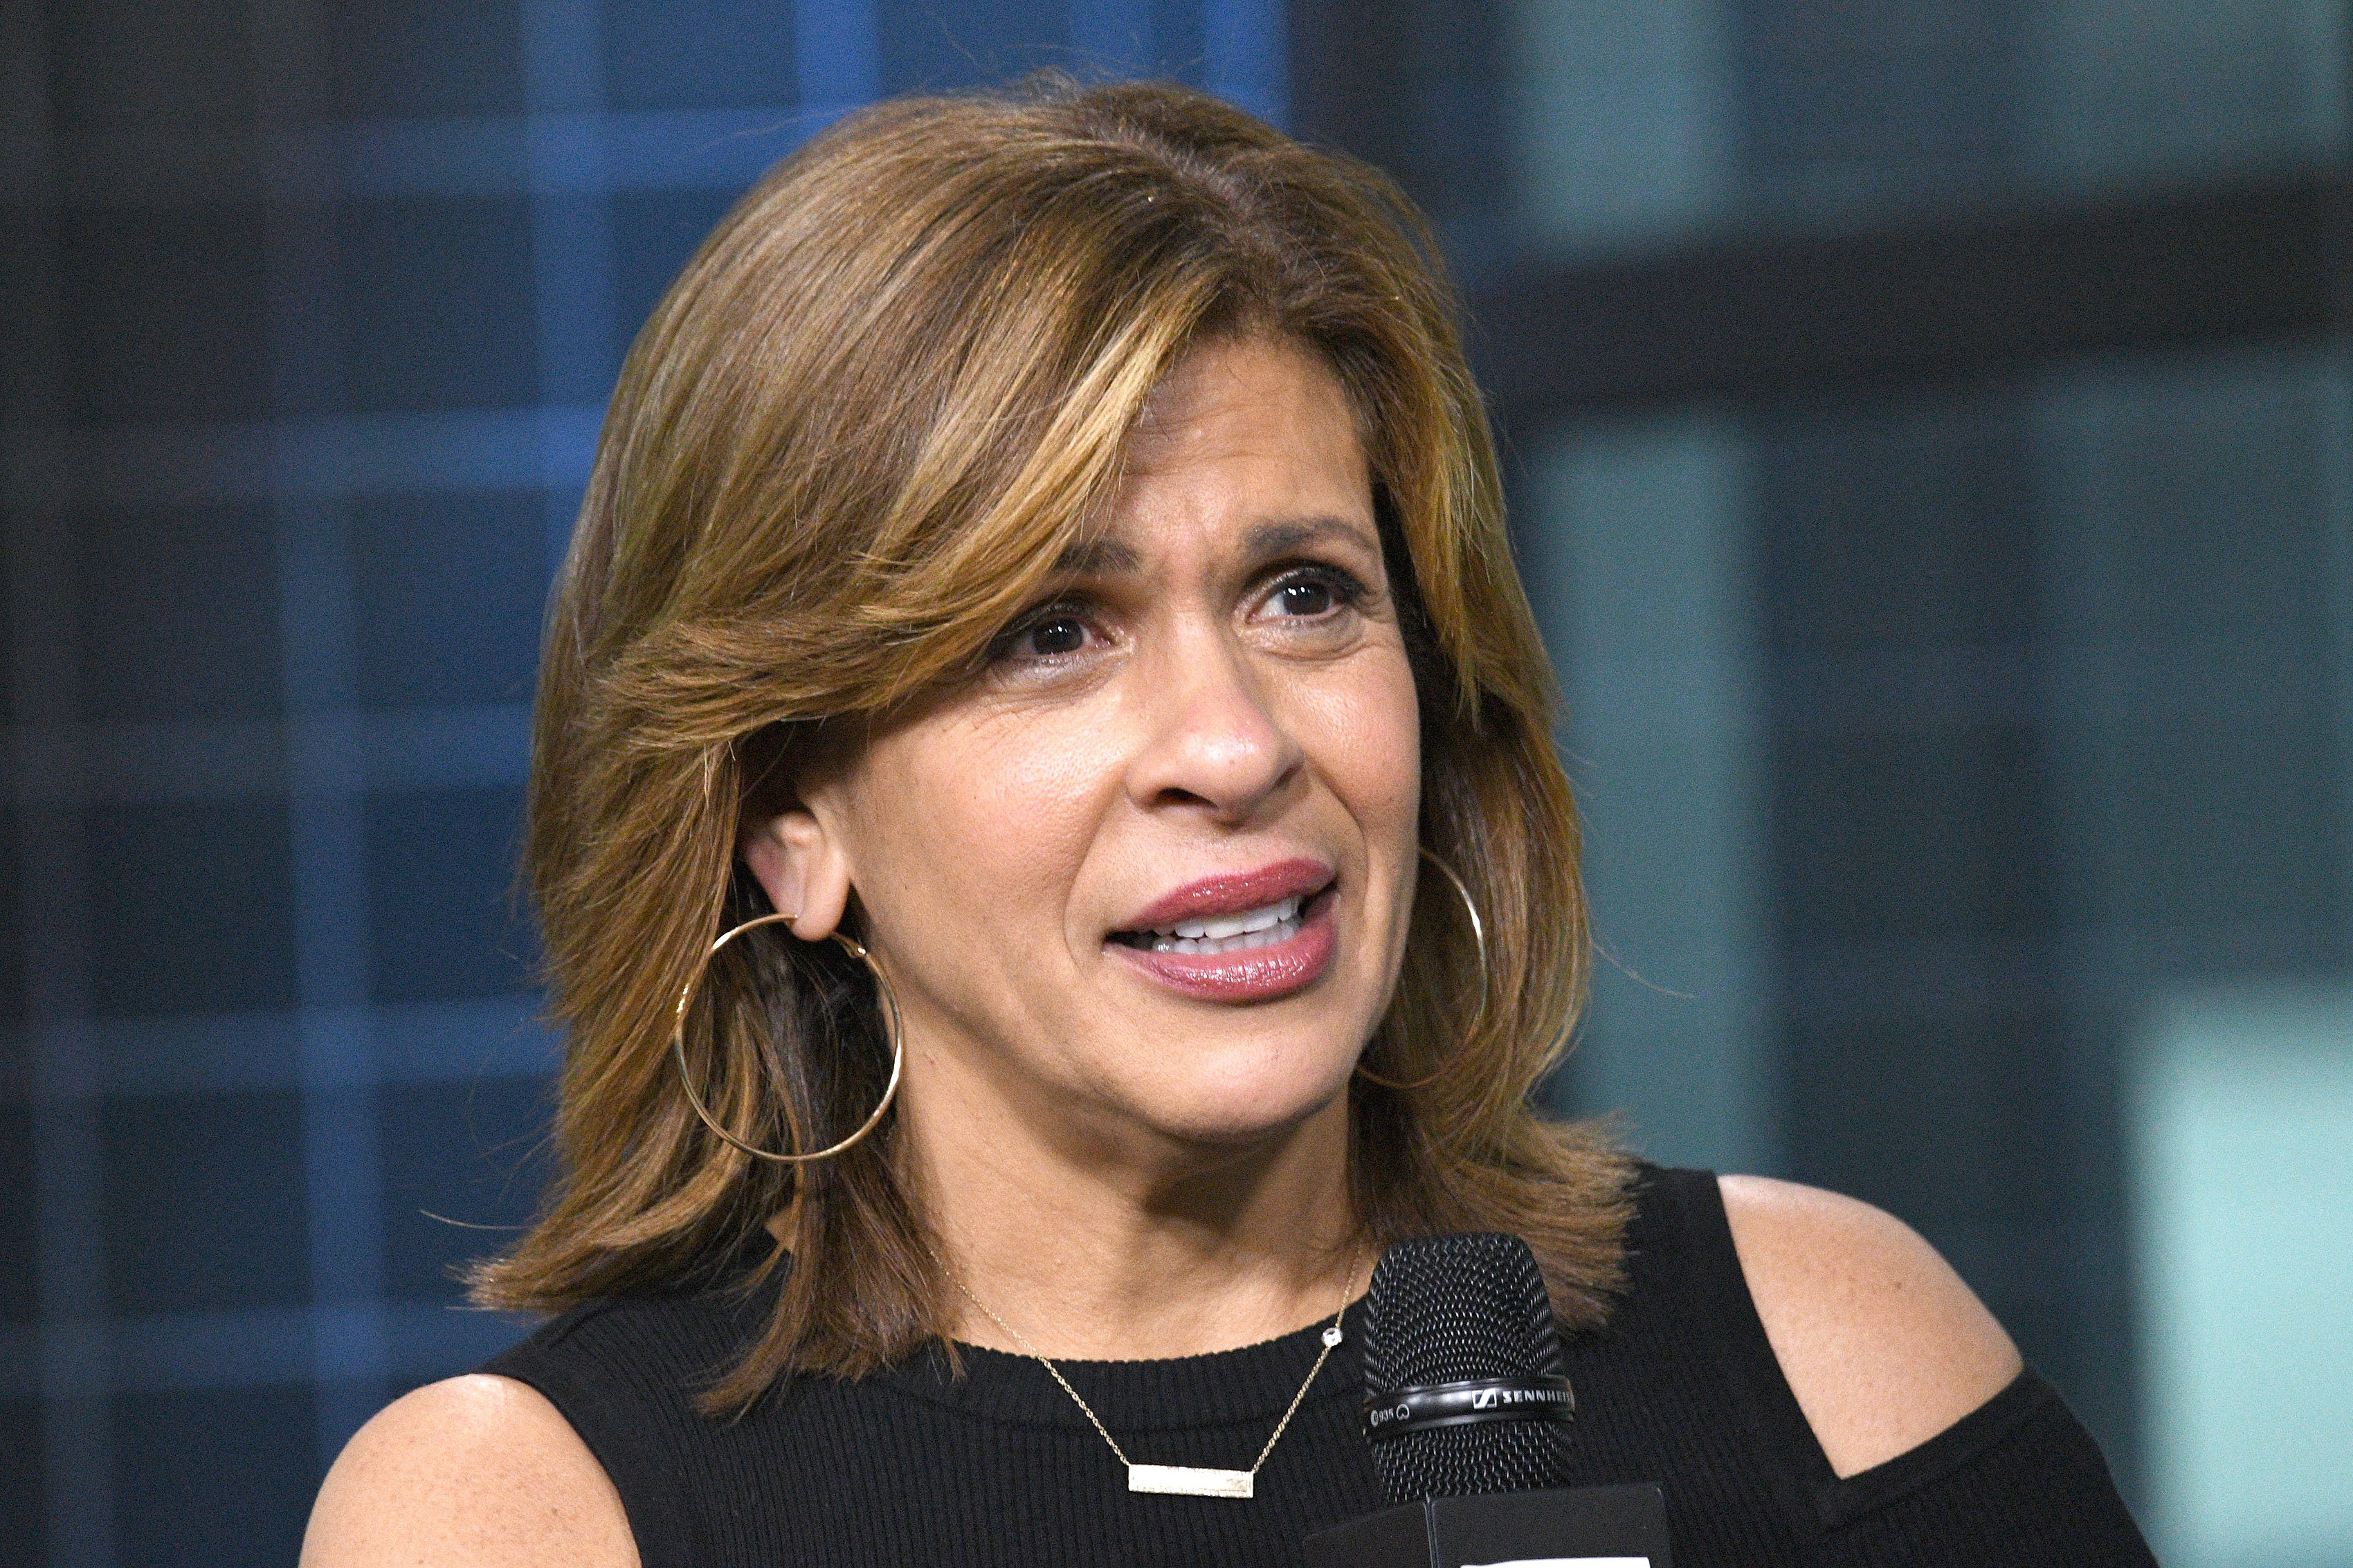 Watch Hoda Kotb Surprise This Sweet Couple With The Adoption News They'd Been Waiting For